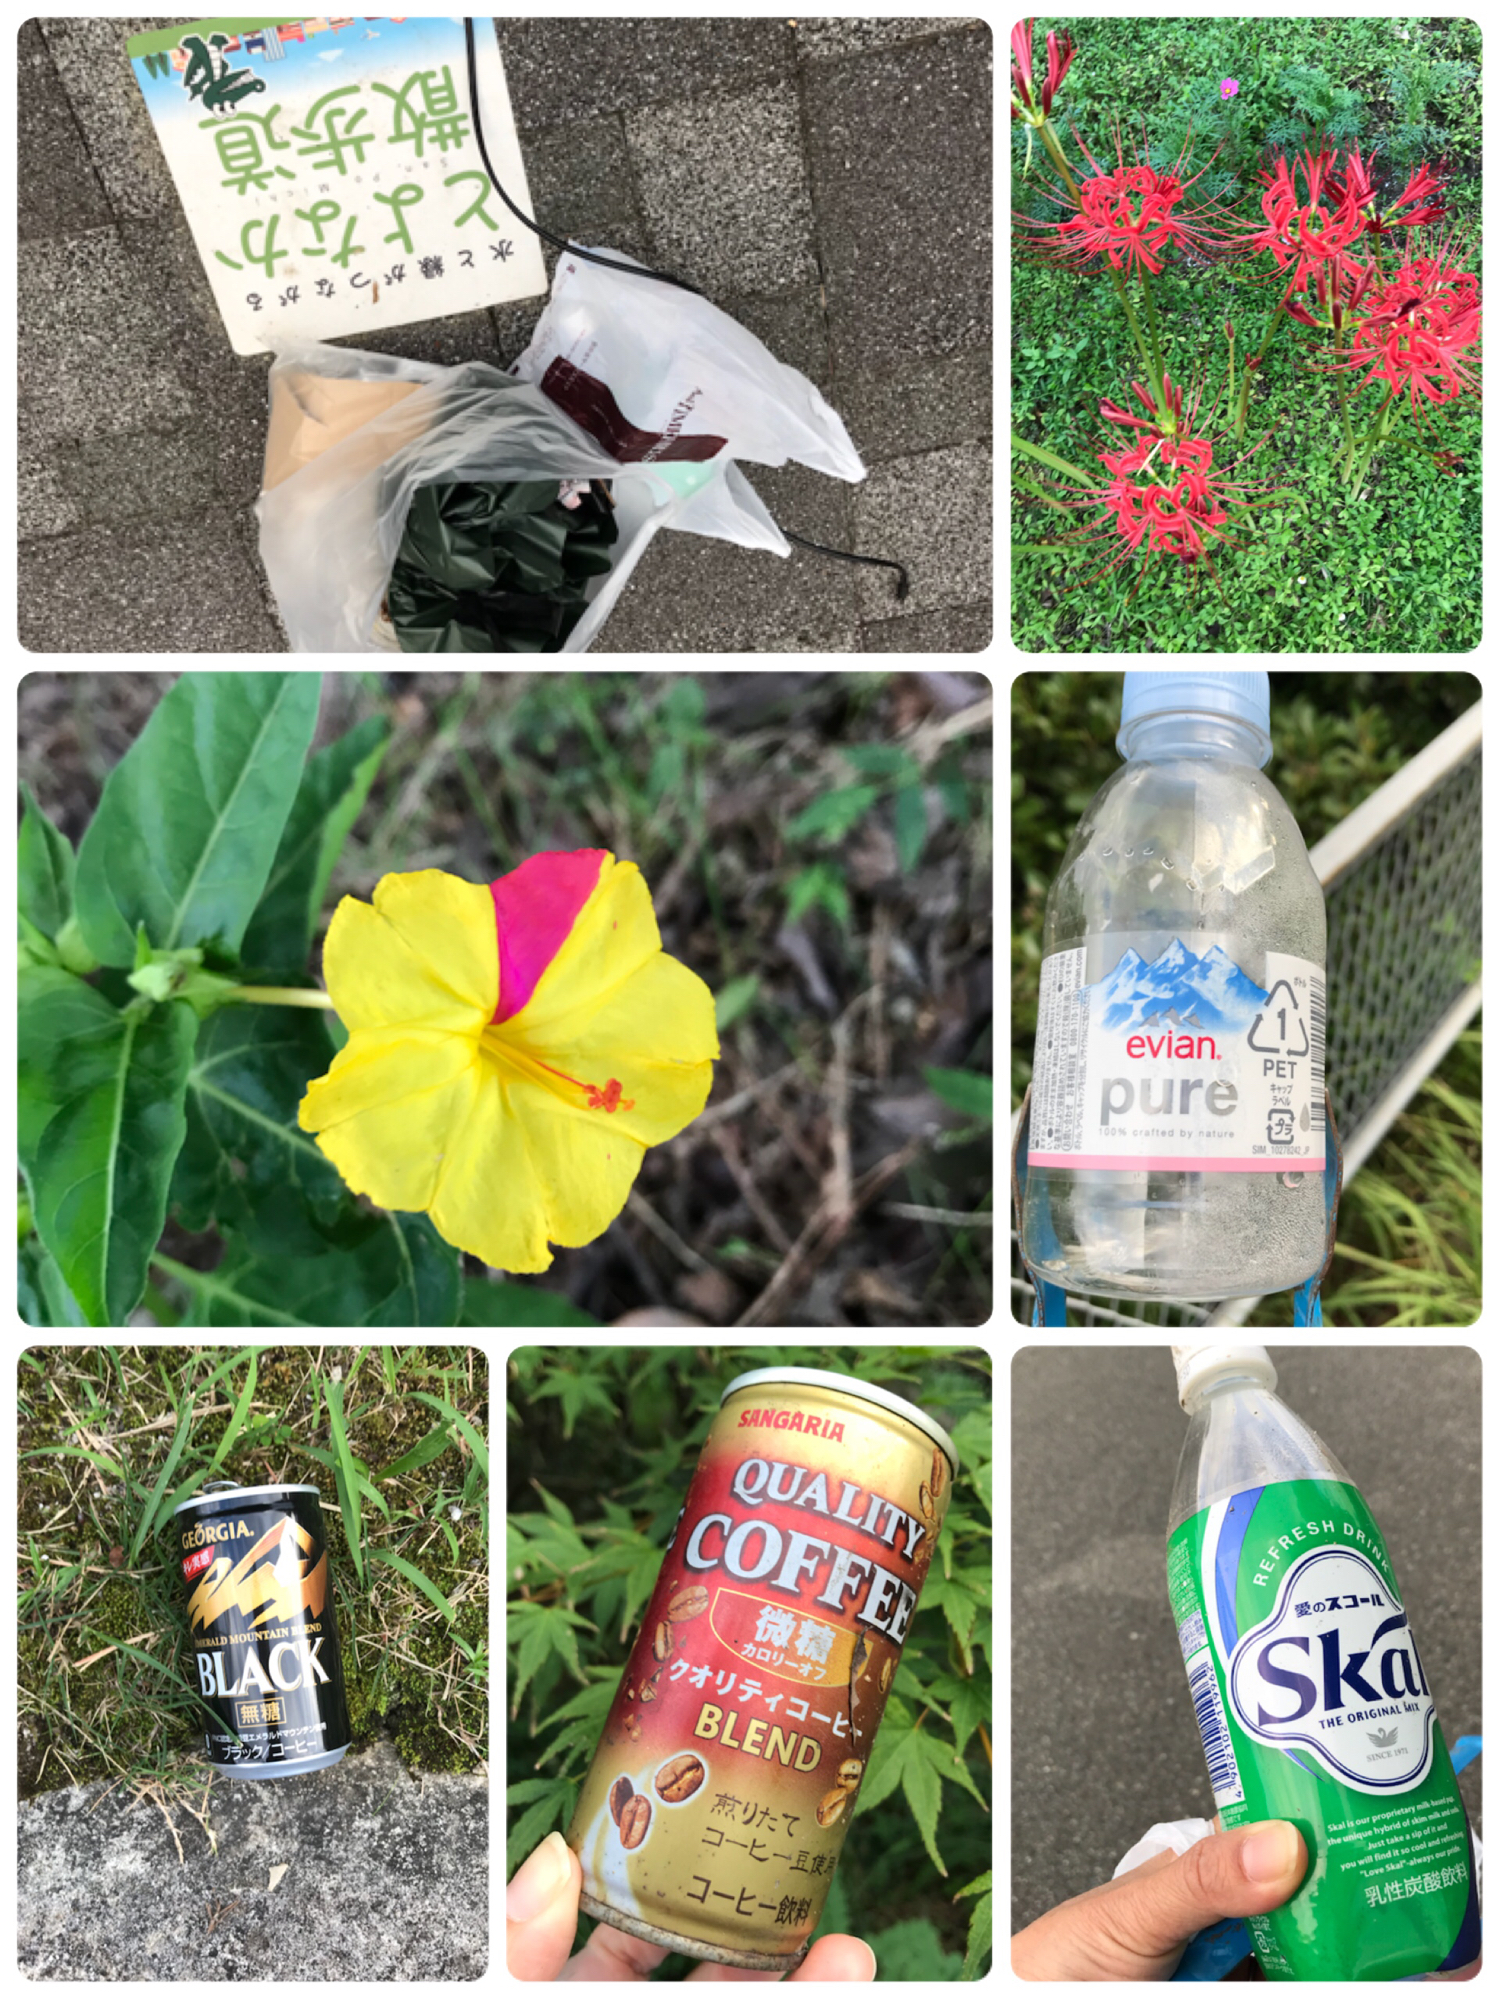 #worldcleanupday 何となく今日は、いい一日でした。お疲れ様でした⸜(*˙꒳˙*)⸝